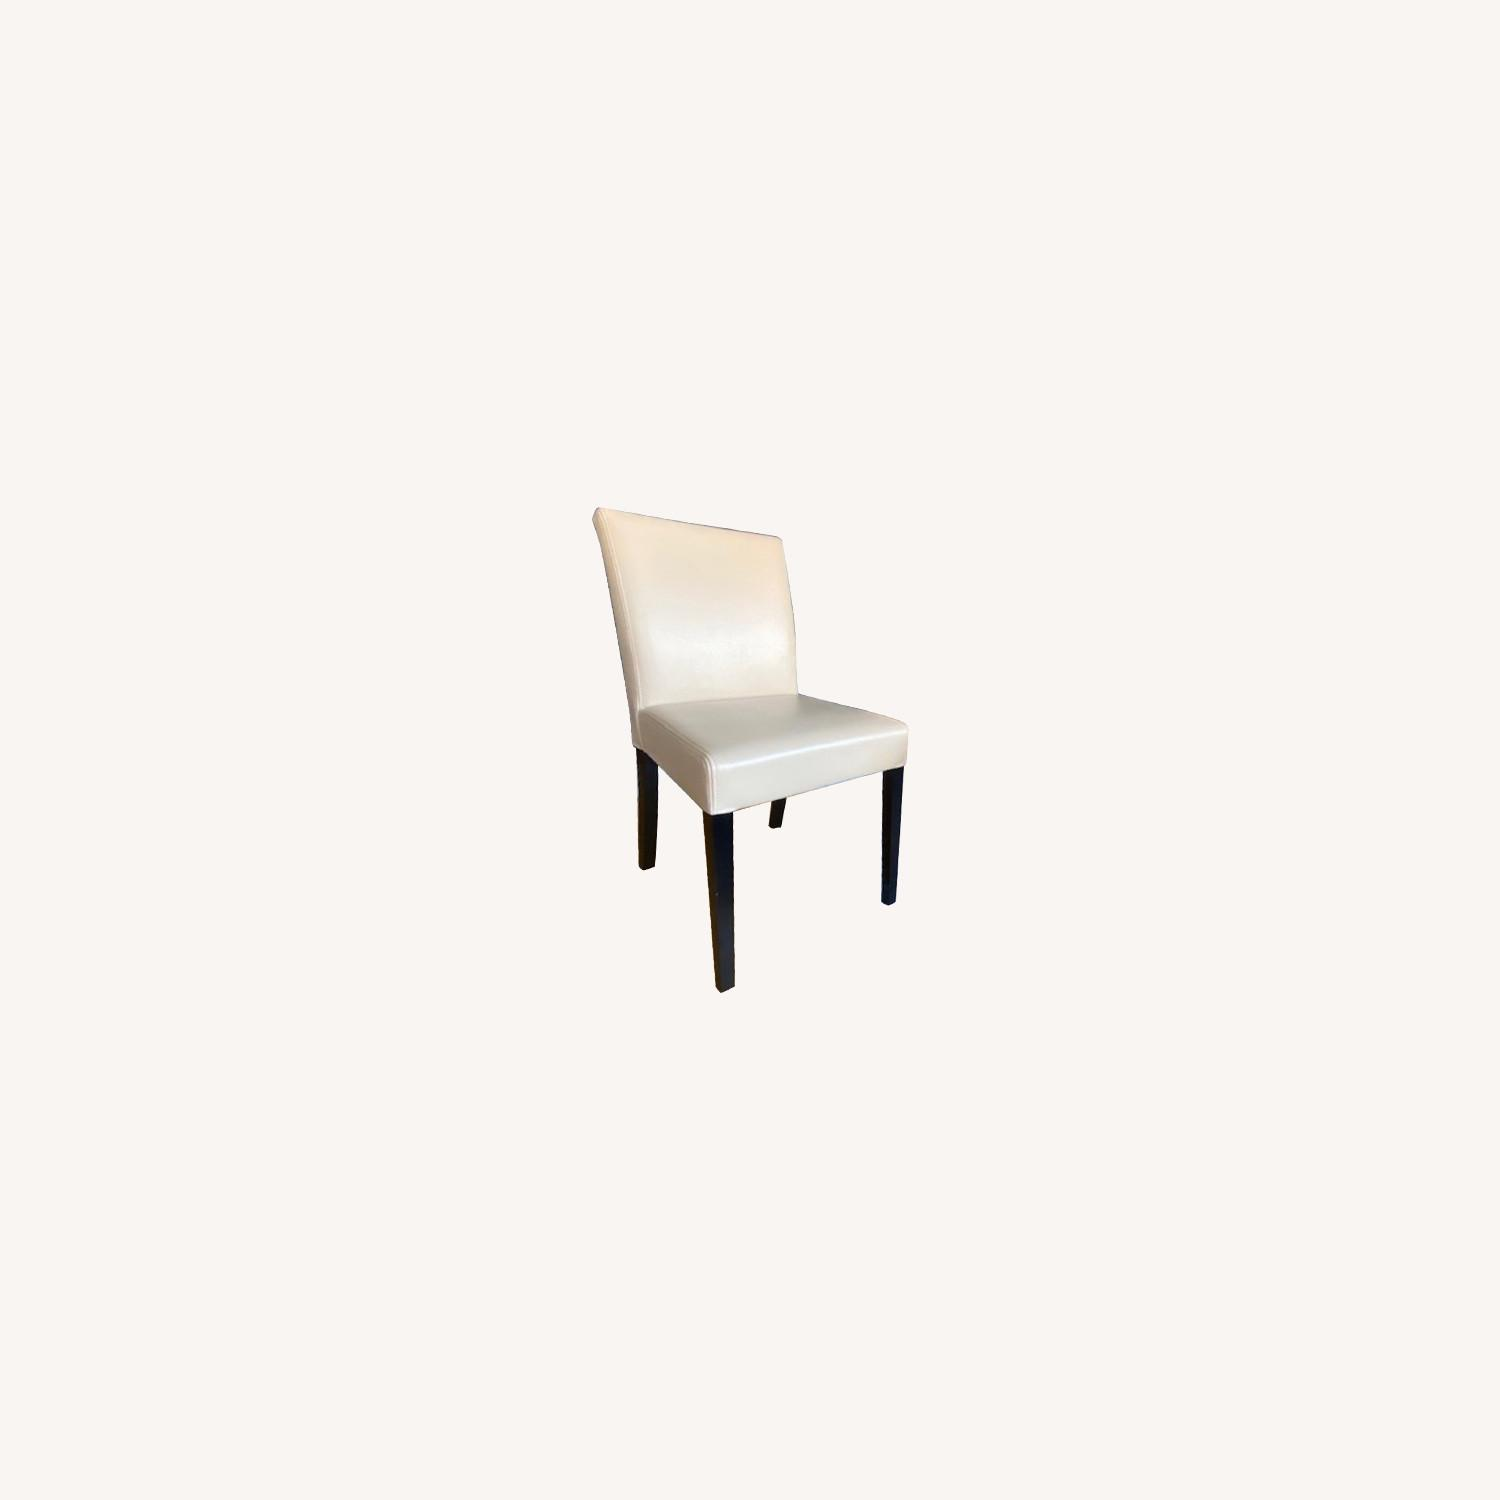 Crate & Barrel Lowe Ivory Leather Dining Chairs - image-13